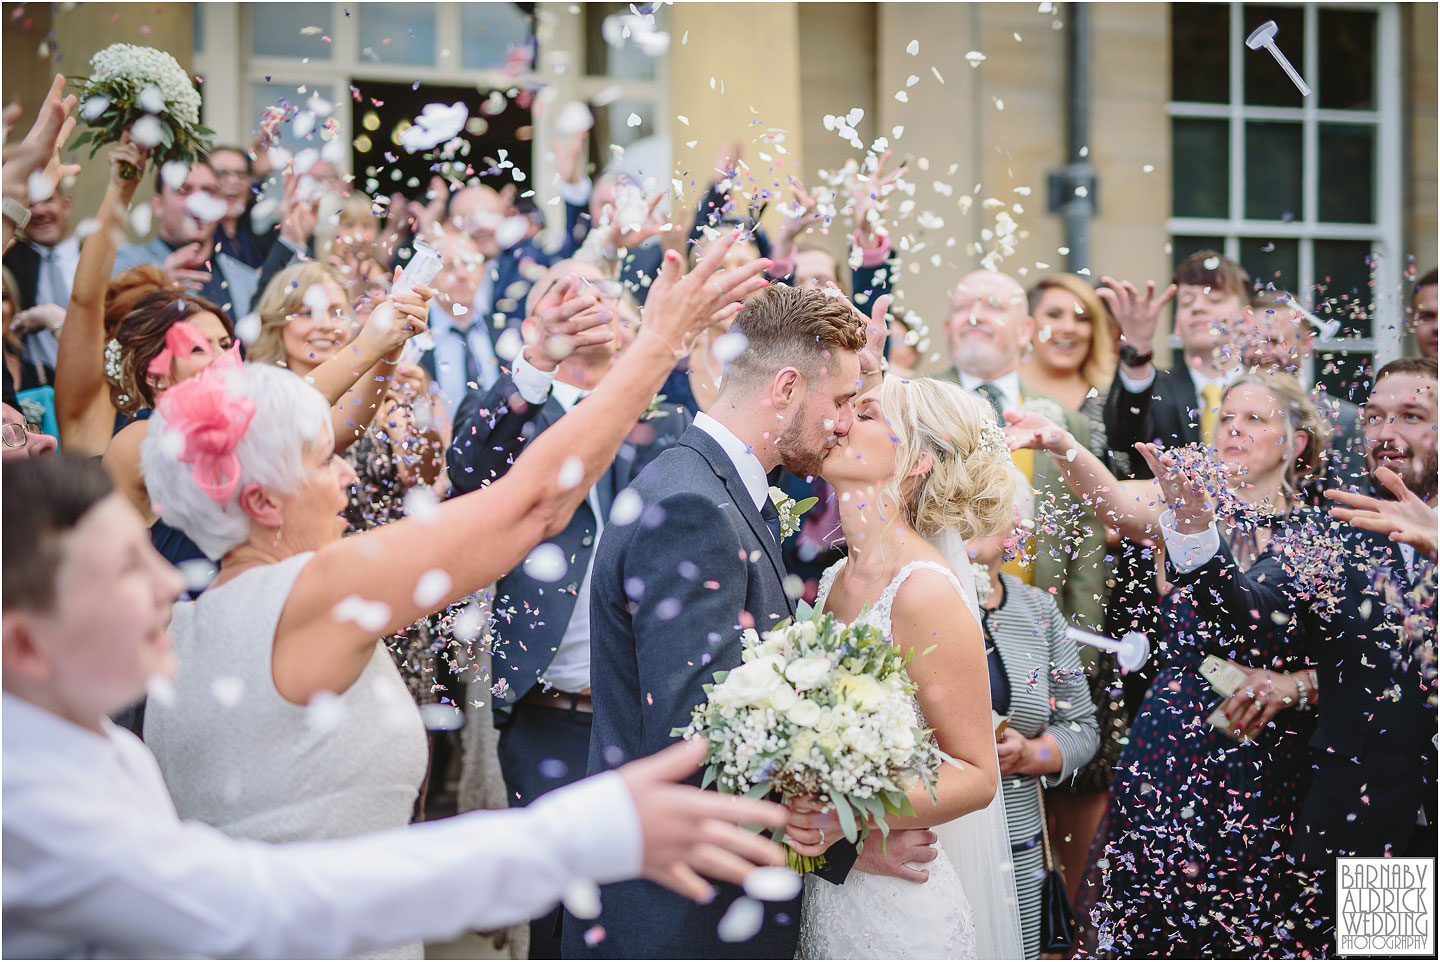 A confetti moment at Saltmarshe Hall near Goole in East Yorkshire, Wedding photography at Saltmarshe Hall, East Yorkshire Wedding Photographer Barnaby Aldrick